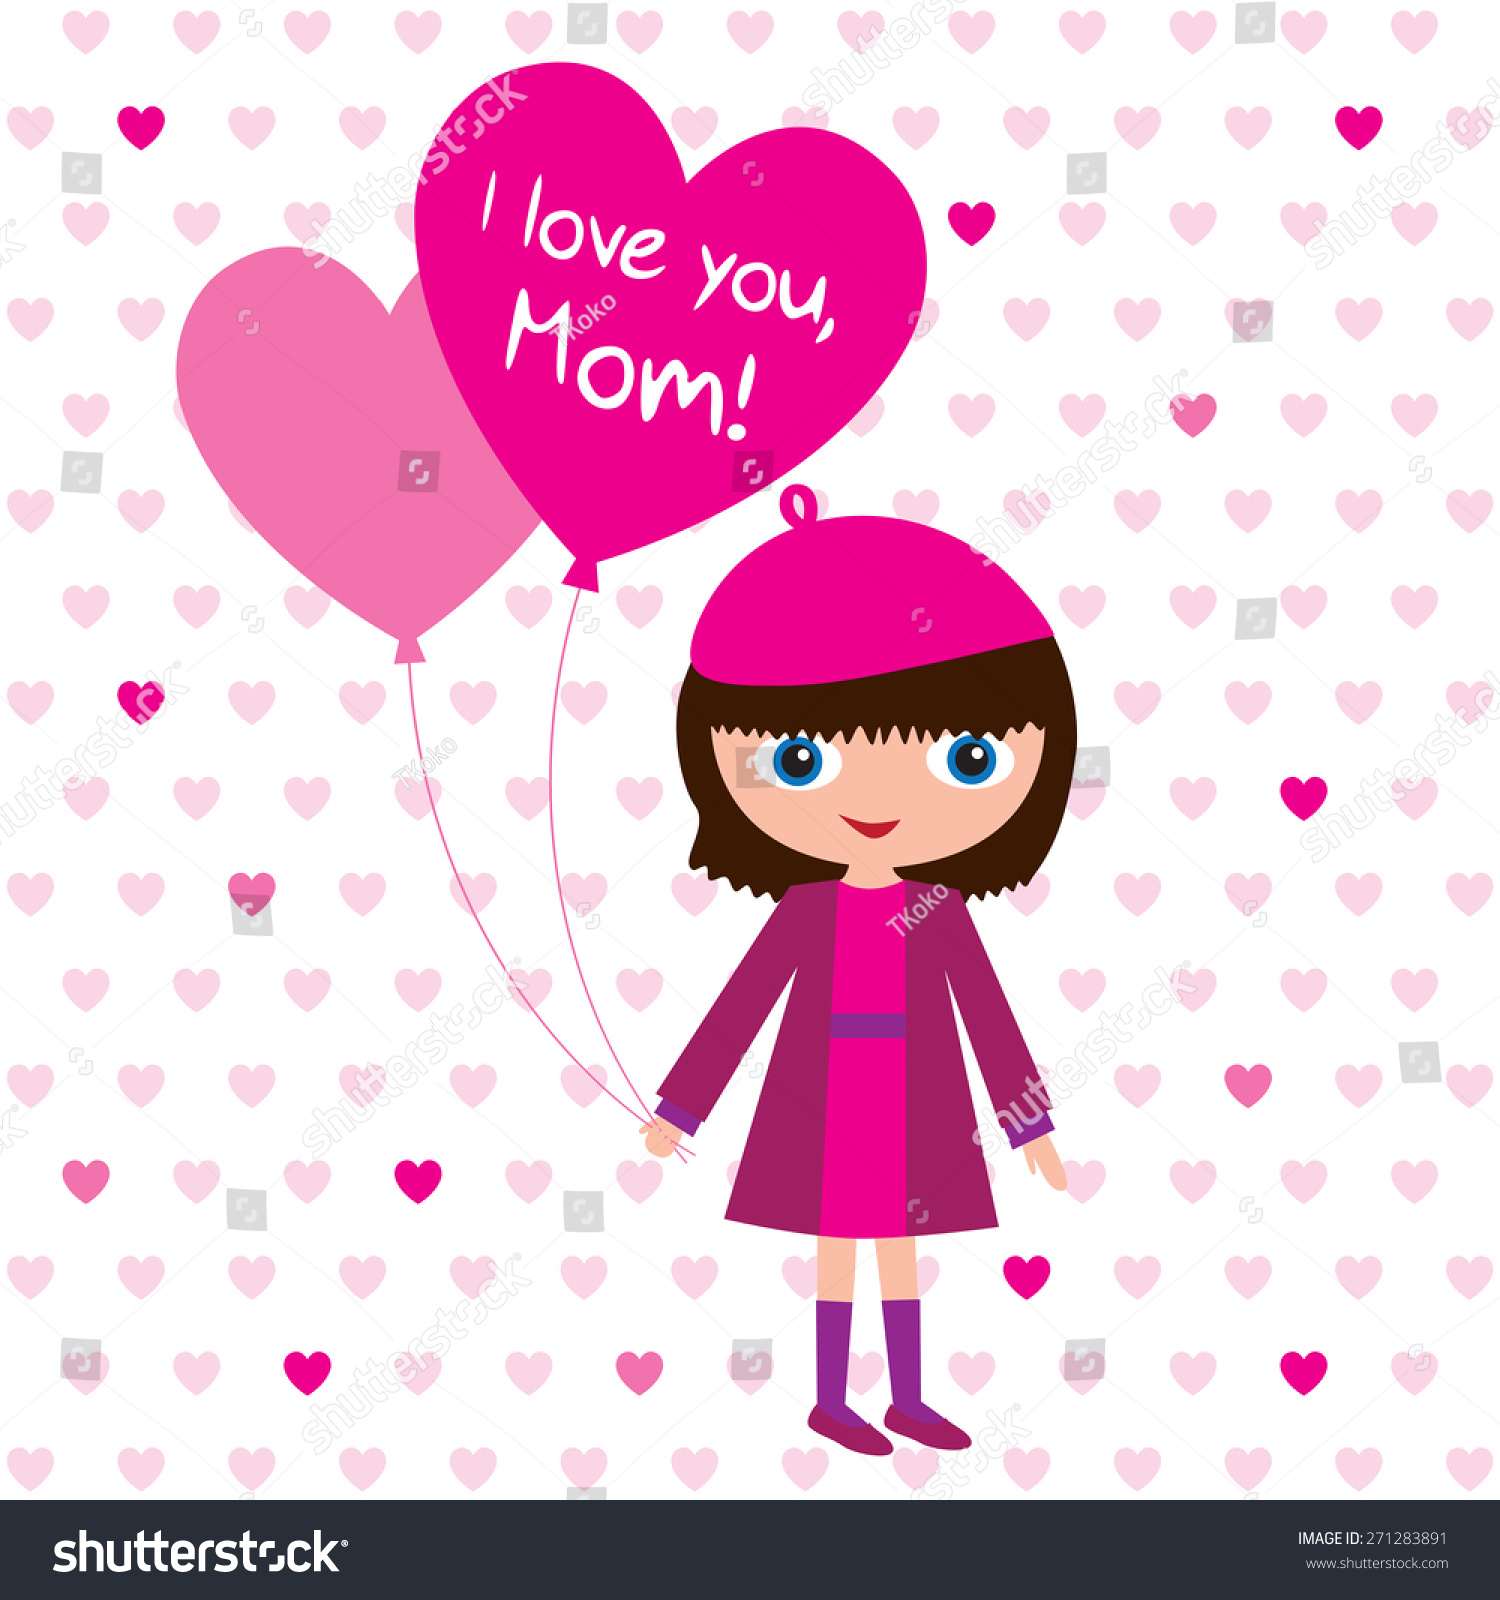 Happy Mothers Day Greeting Card For Mothers Day Little Girl With